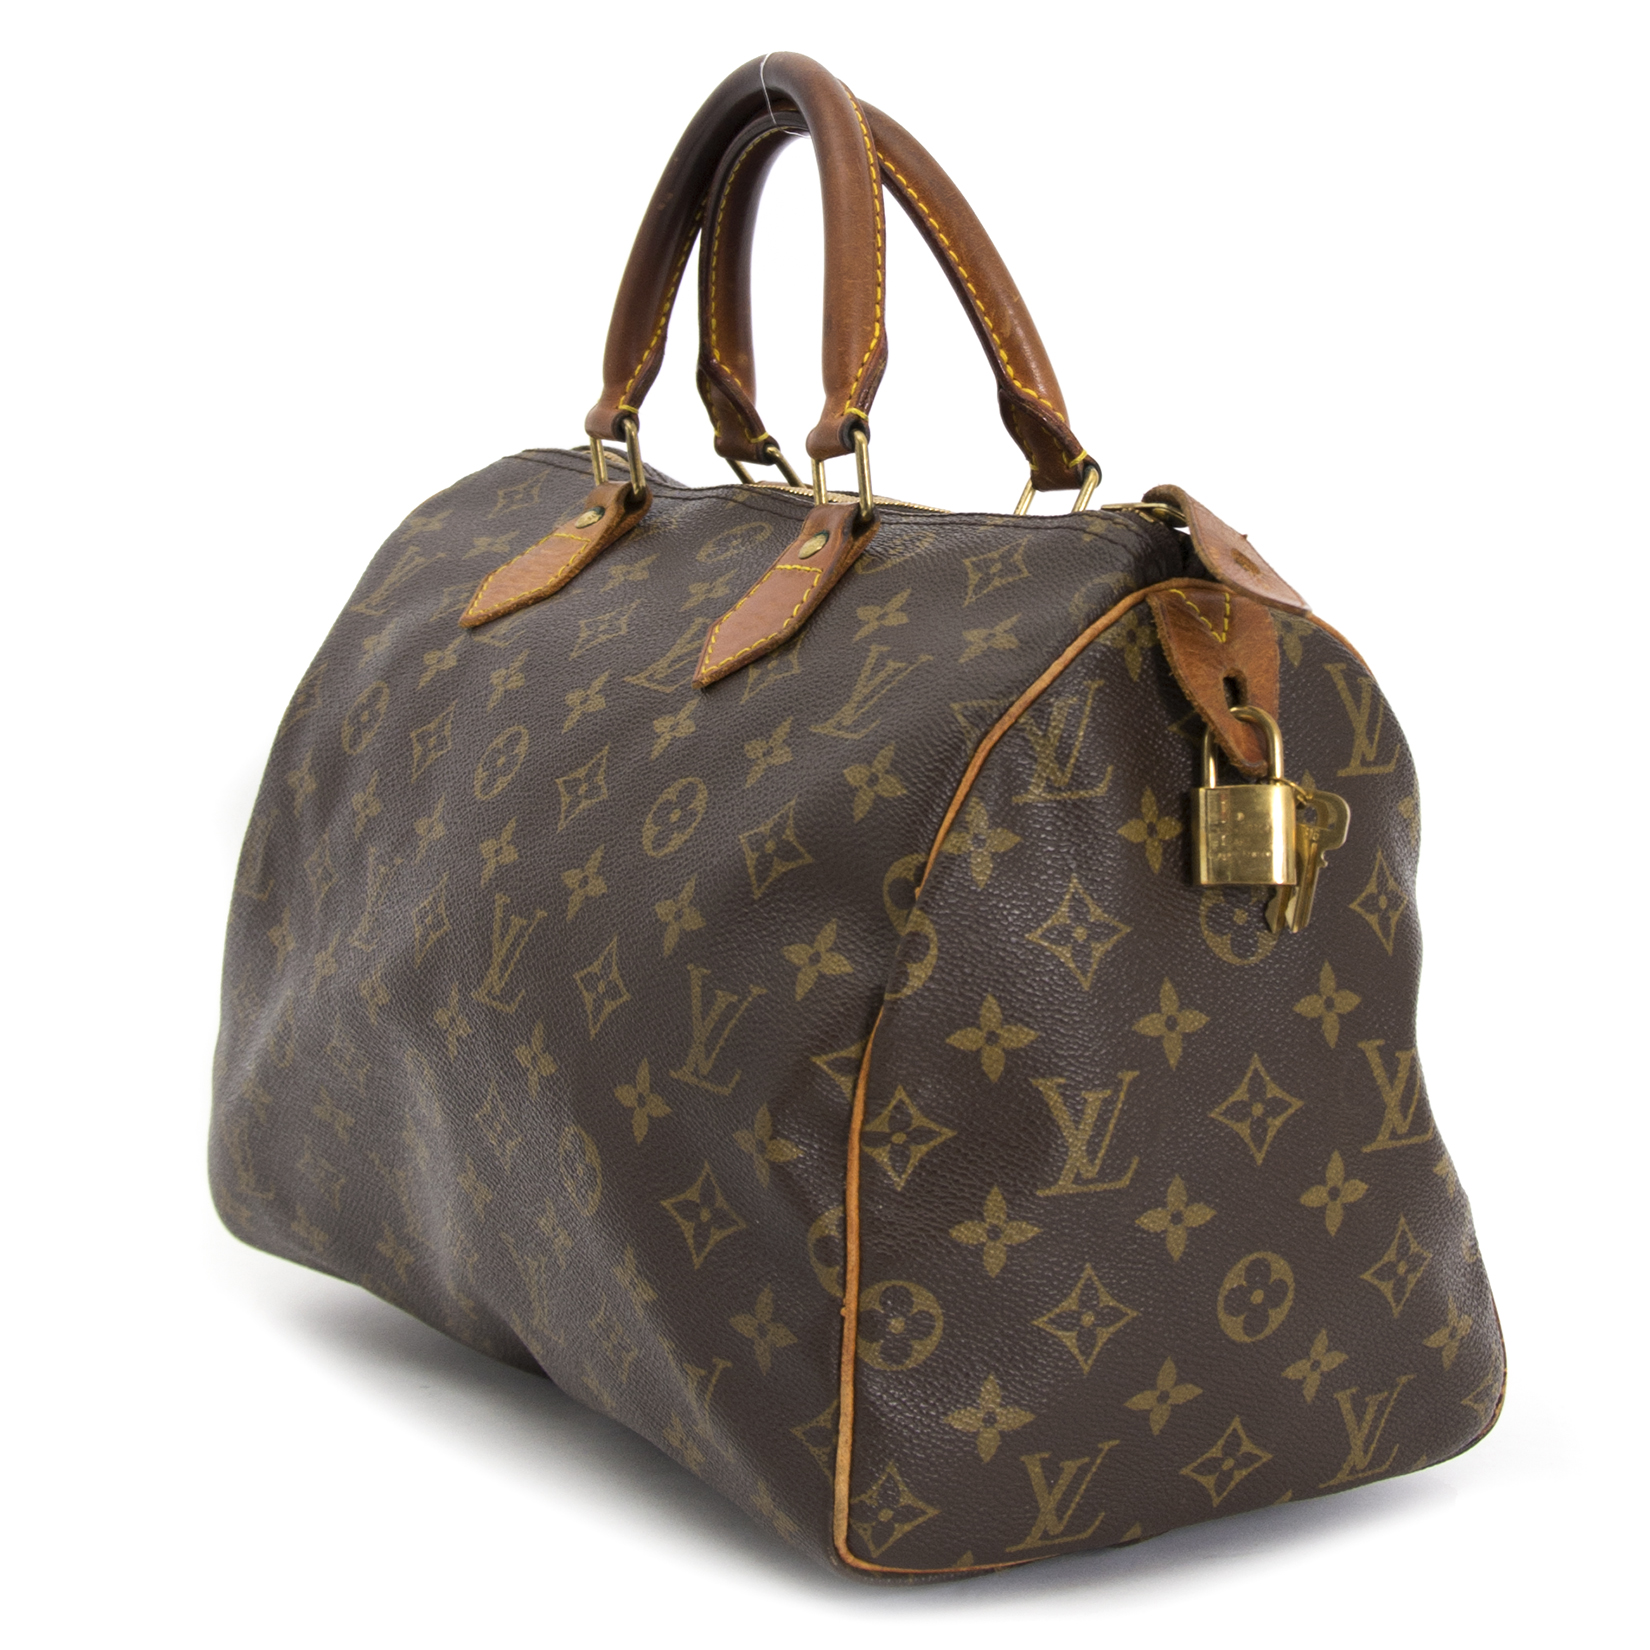 acheter en ligne seconde main  Louis Vuitton Monogram Speedy 30